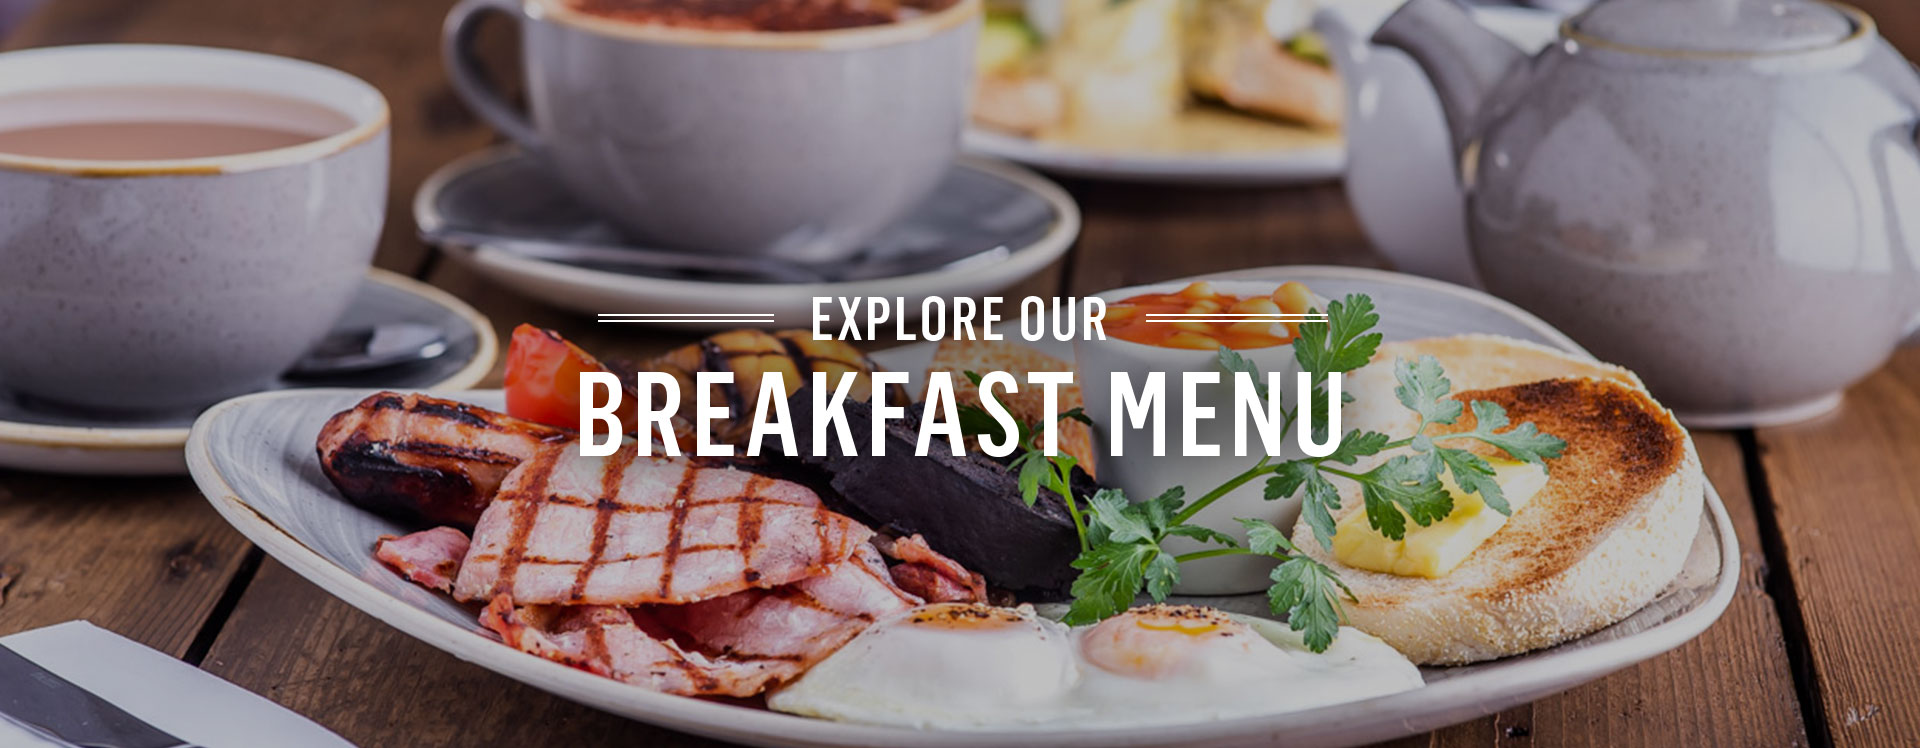 Breakfast at The Carpenter's Arms - Book a table